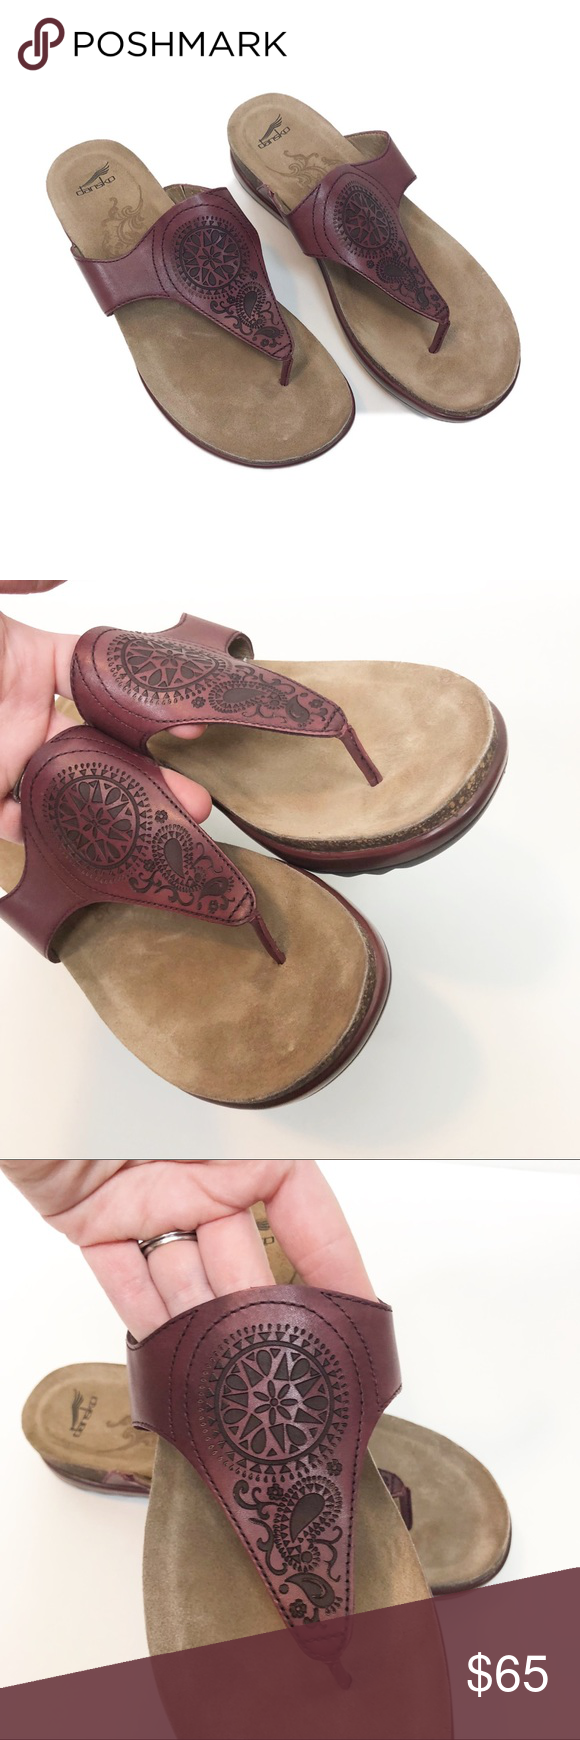 4eb62c159e8d Dansko Priya Flip Flop Sandals women s size 40 Very good preowned condition  to be conservative but these really show no signs of wear.